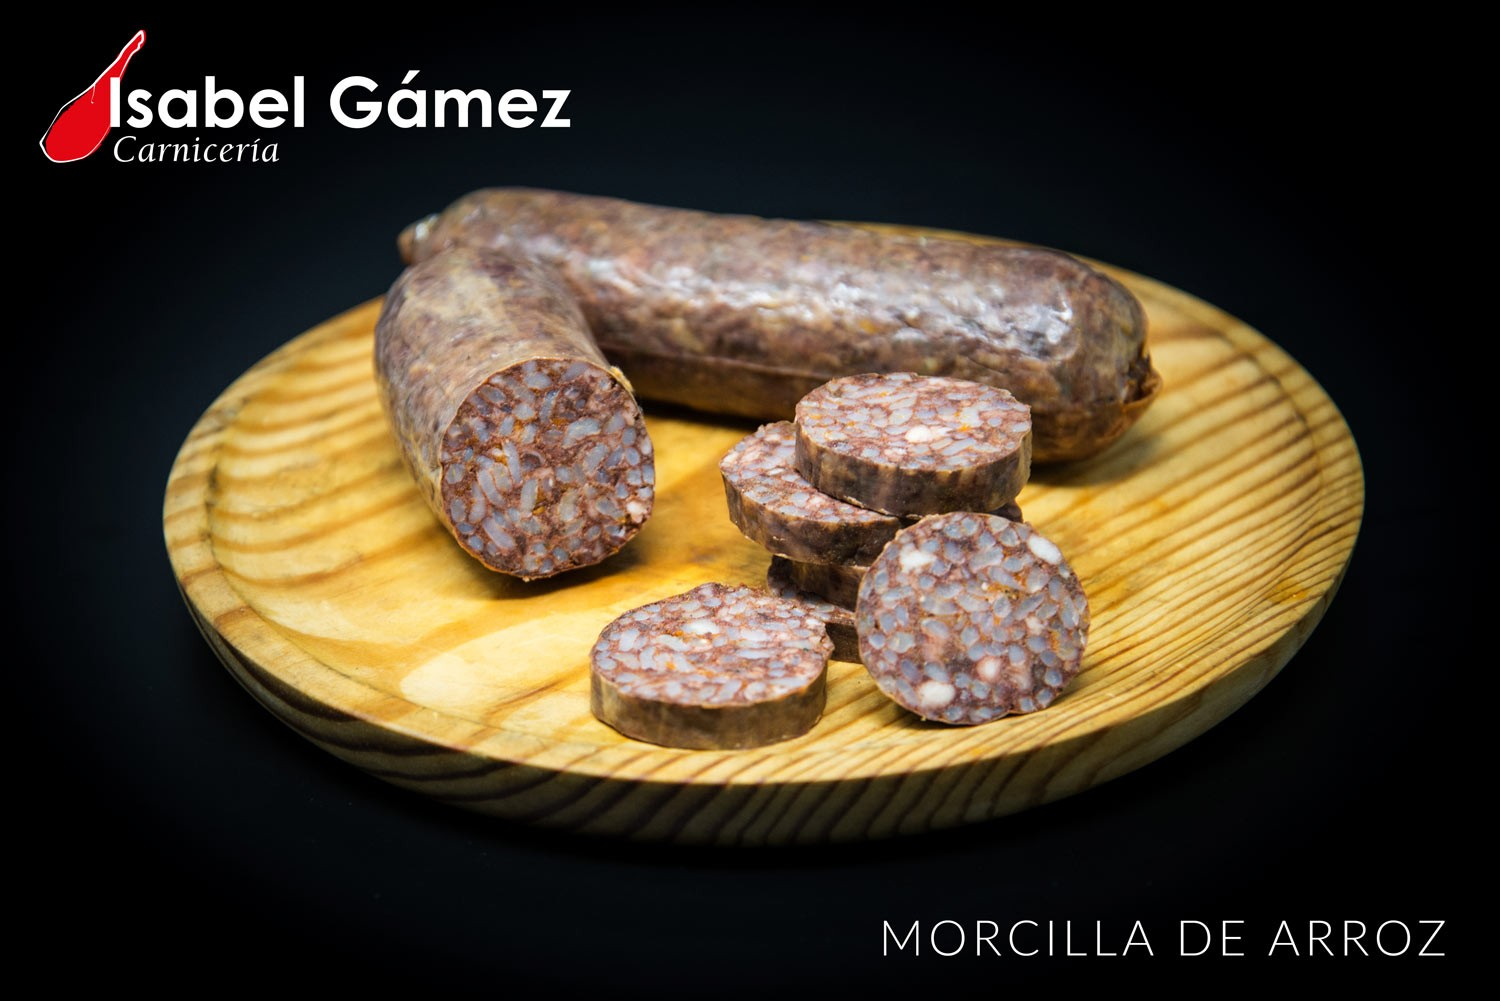 MORCILLA DE ARROZ ISABEL GAMEZ